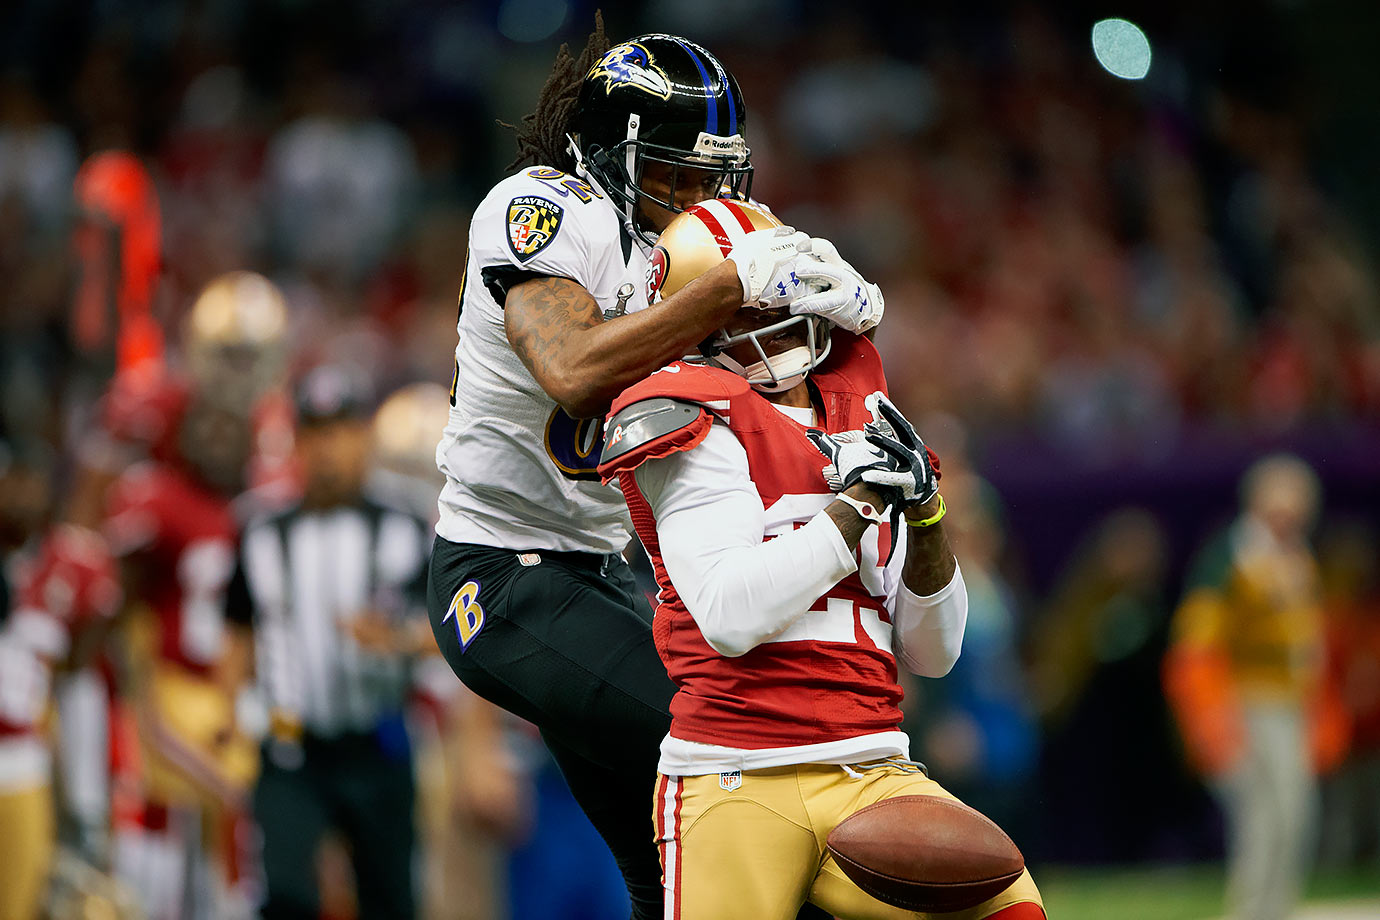 Baltimore Ravens wide receiver Torrey Smith turns into a defender to try to keep San Francisco 49ers cornerback Chris Culliver from making an interception. Ravens quarterback Joe Flacco's three touchdown passes and zero interceptions helped lead Baltimore to a 34-31 victory.